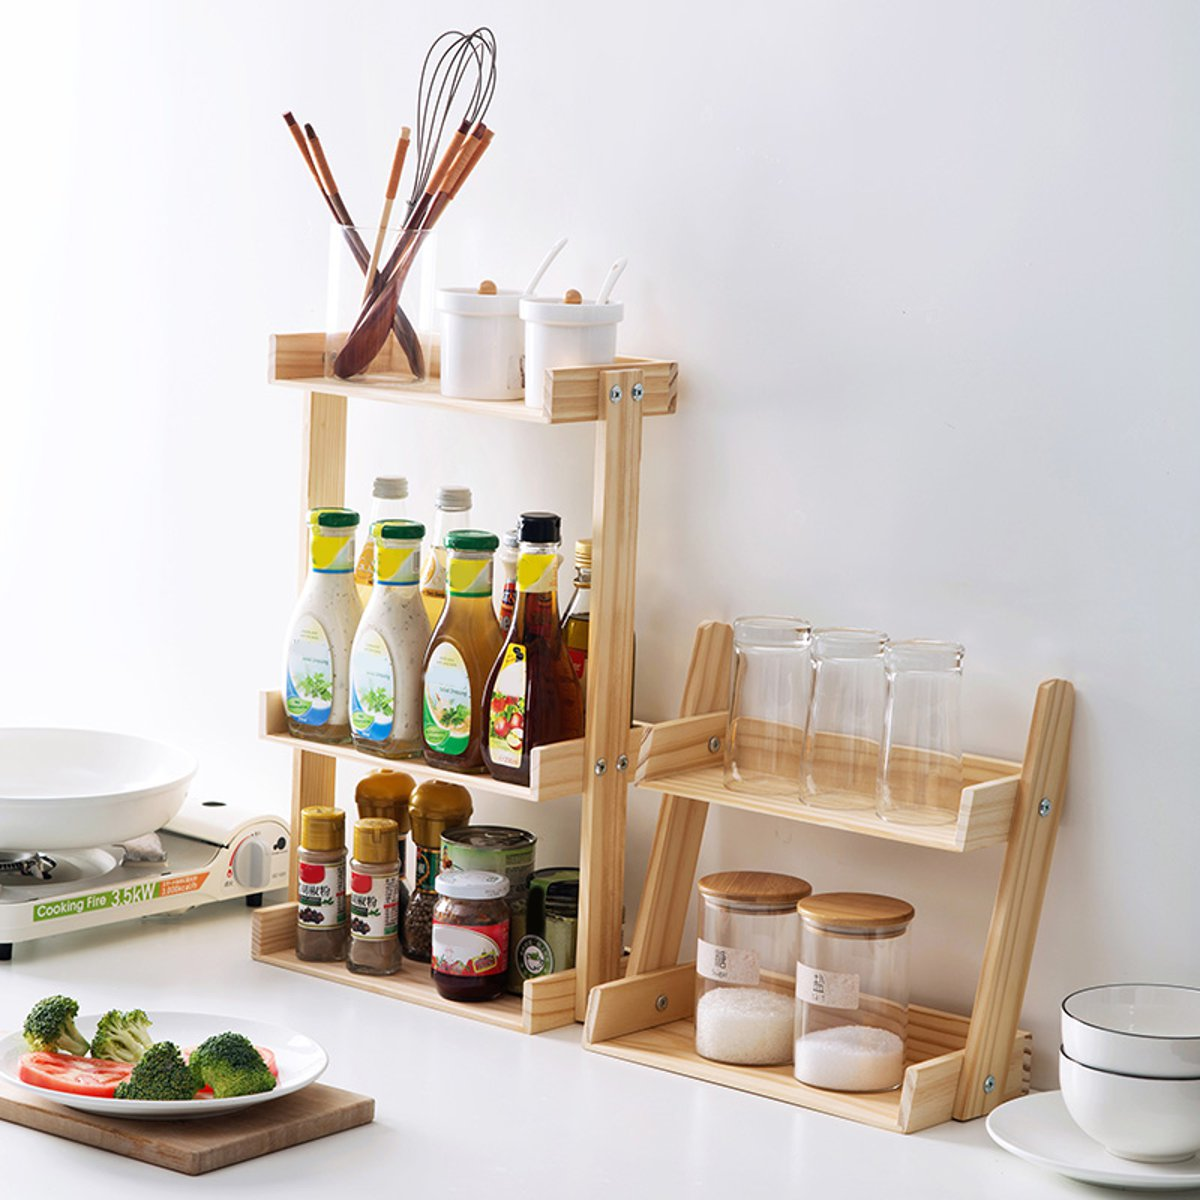 2/3 Layers Wooden Storage Rack Holder Kitchen Organizer Shelf Multifunction Kitchen Seasoning Utensils Storage Table Rack Stand